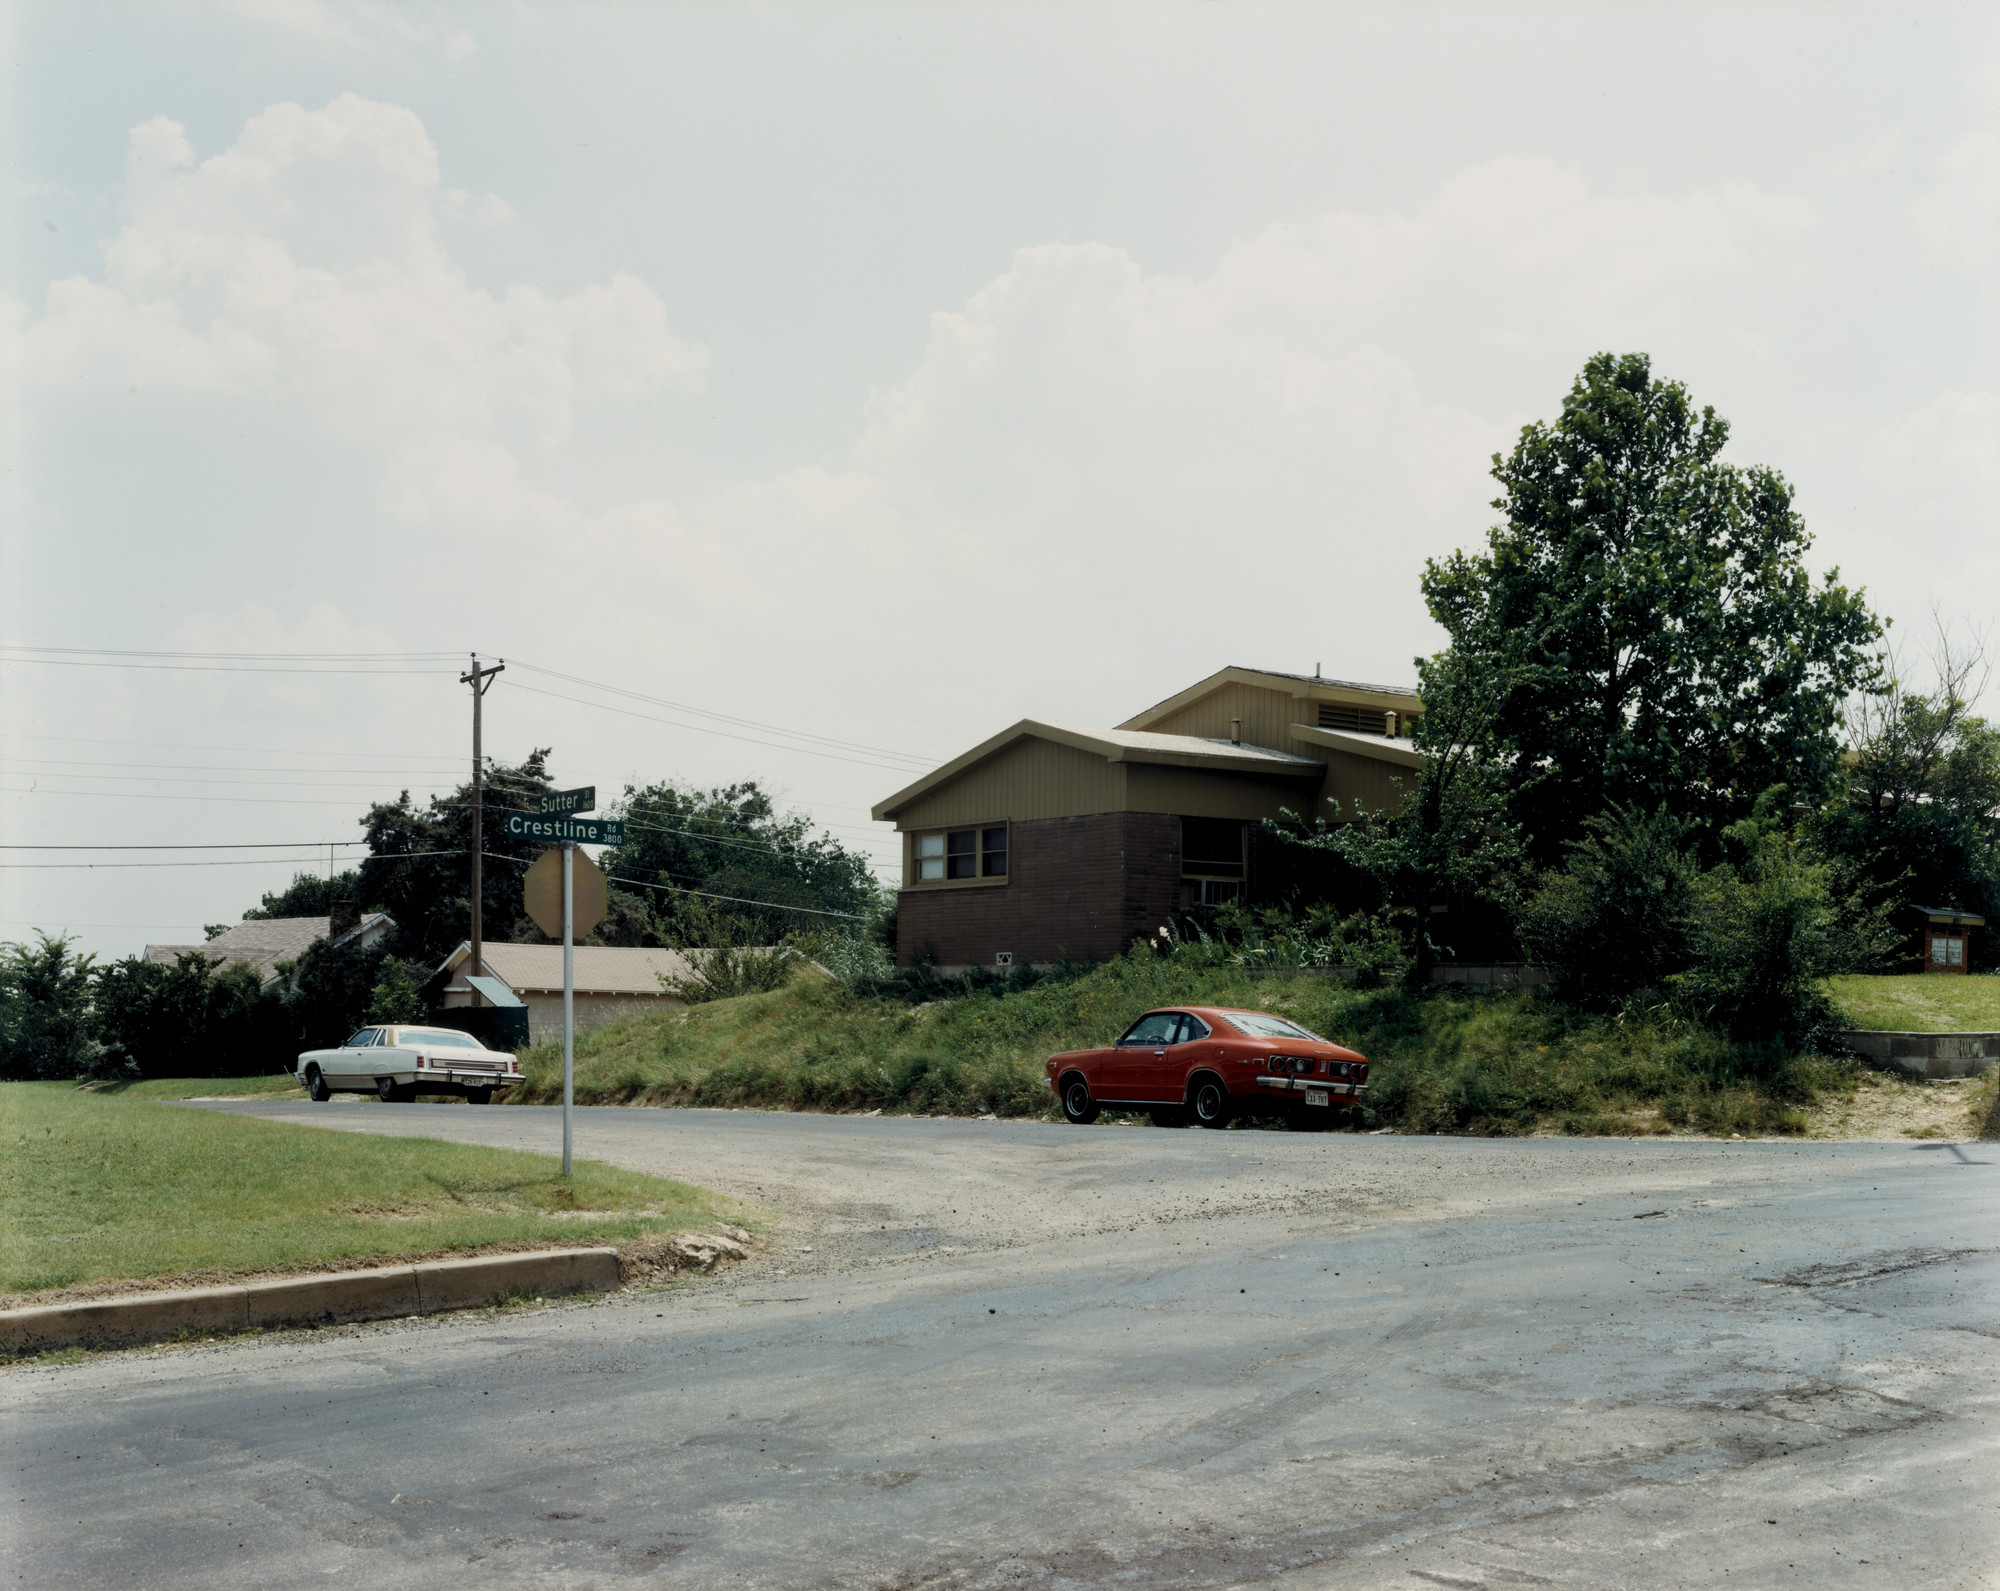 Stephen Shore. Sutter Street and Crestline Road, Fort Worth, Texas, June 3, 1976. 1976